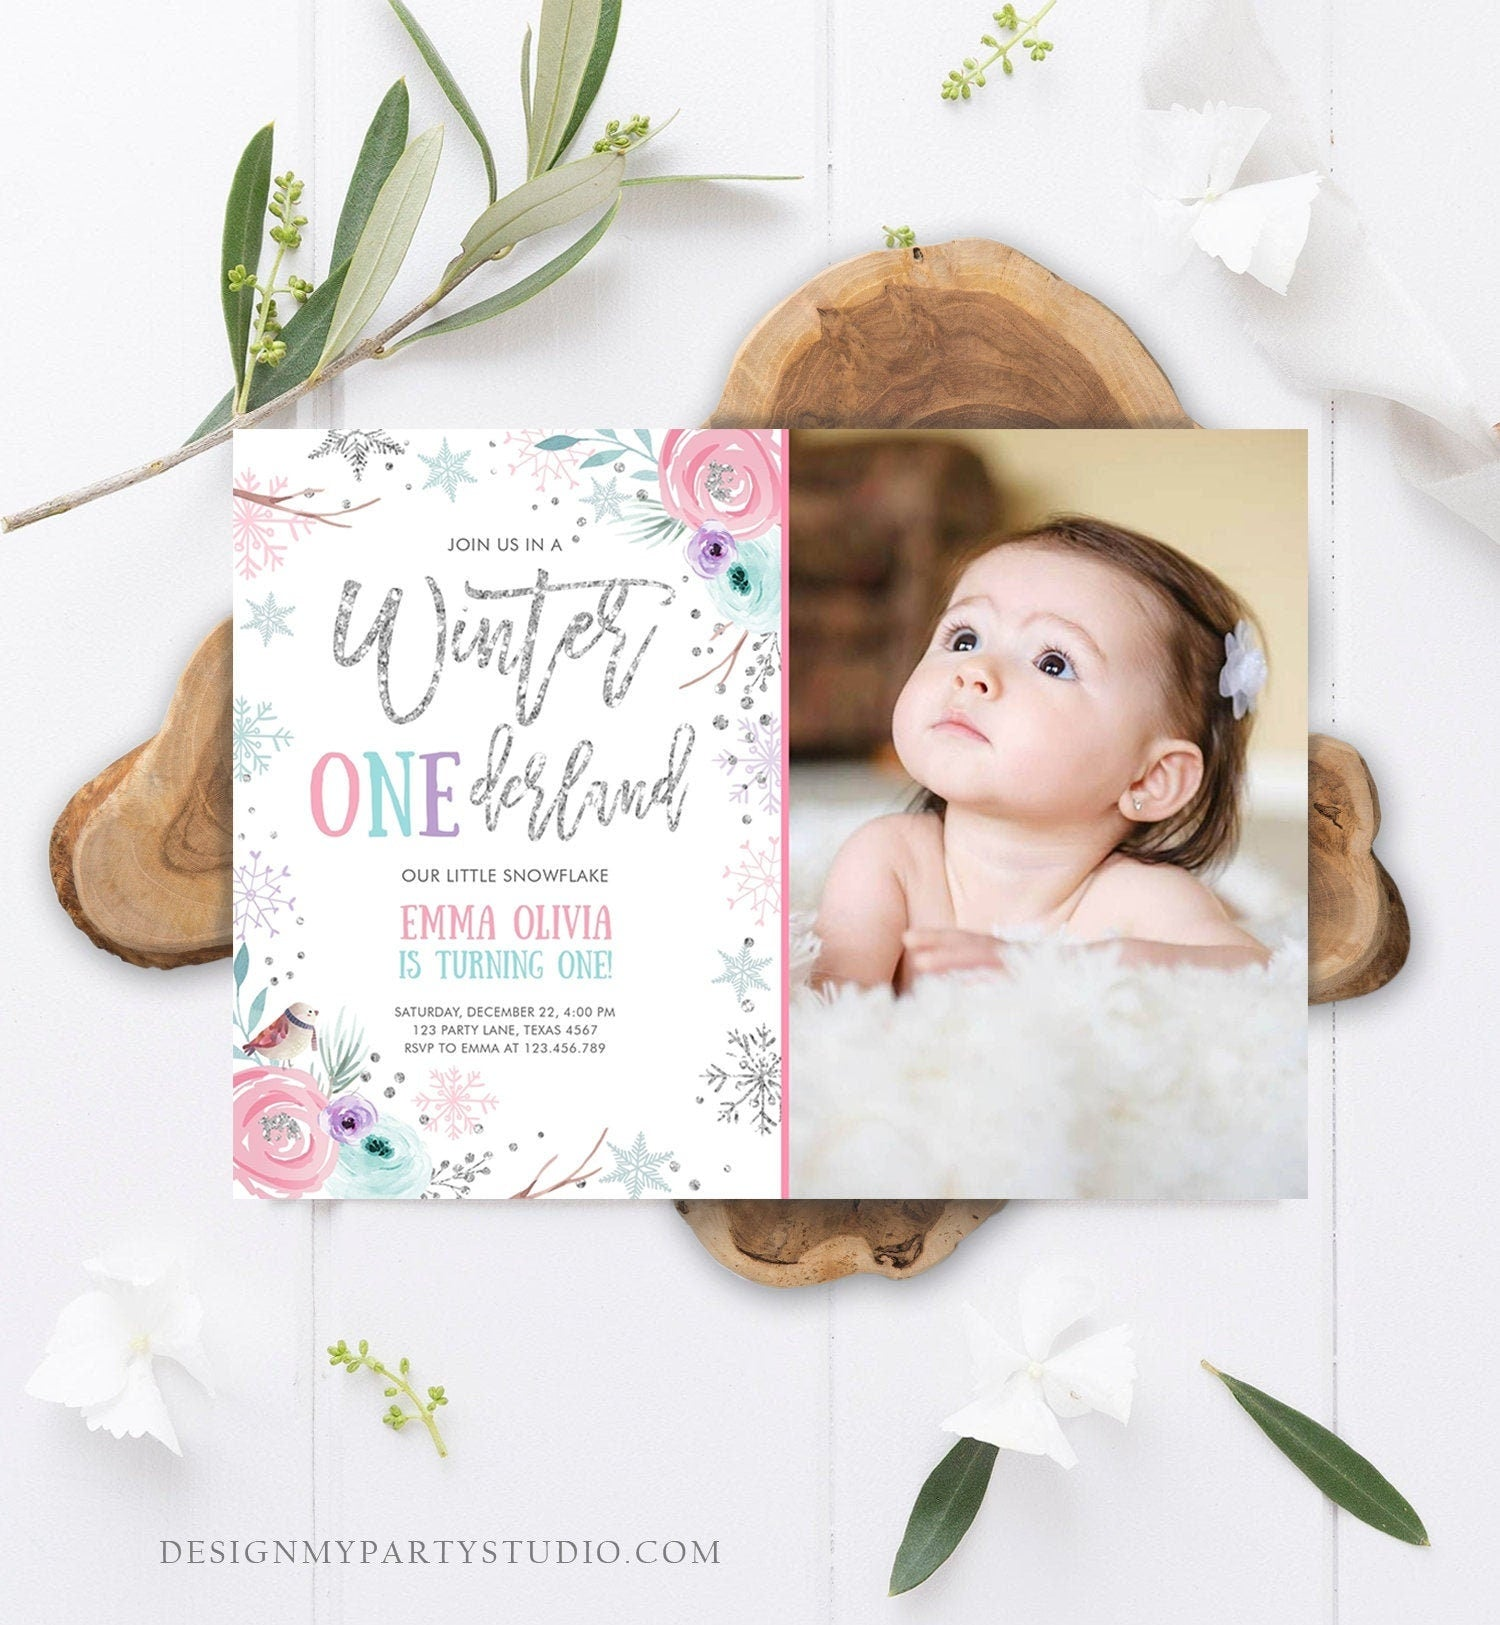 Editable Winter ONEderland Birthday Invitation First Birthday Snowflake Pink Silver Purple Floral Printable Invitation Template Corjl 0256